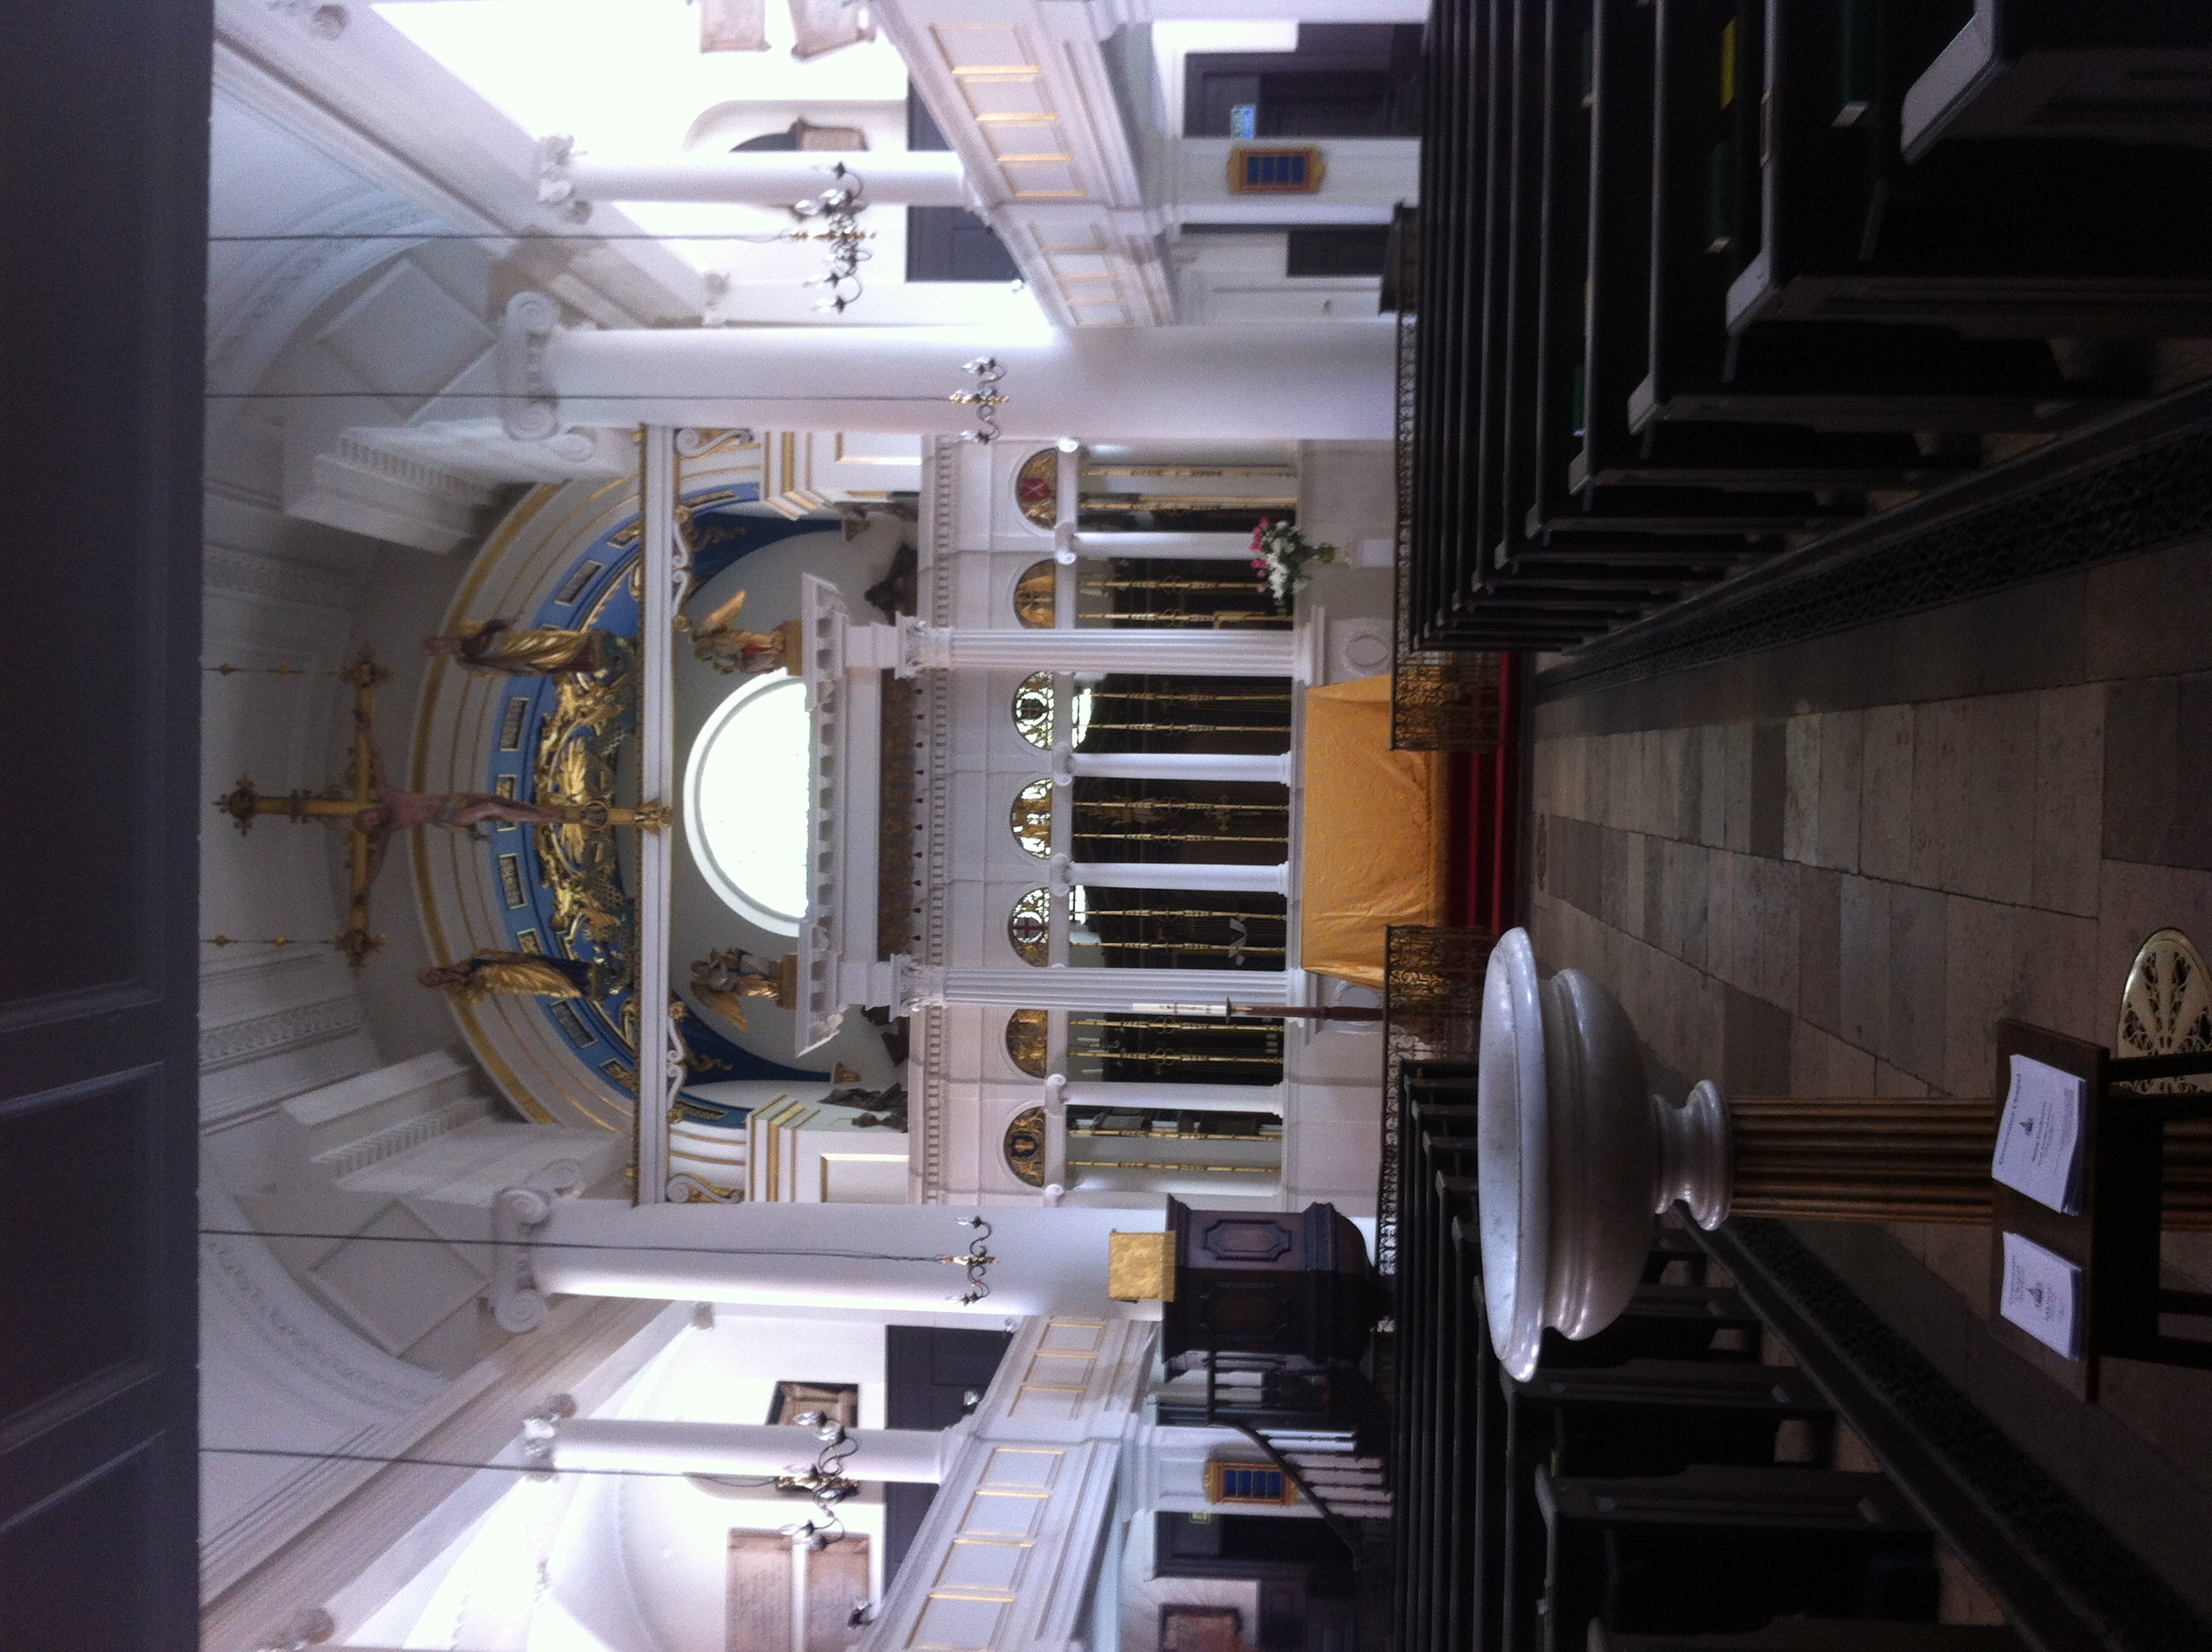 The inside of a London church